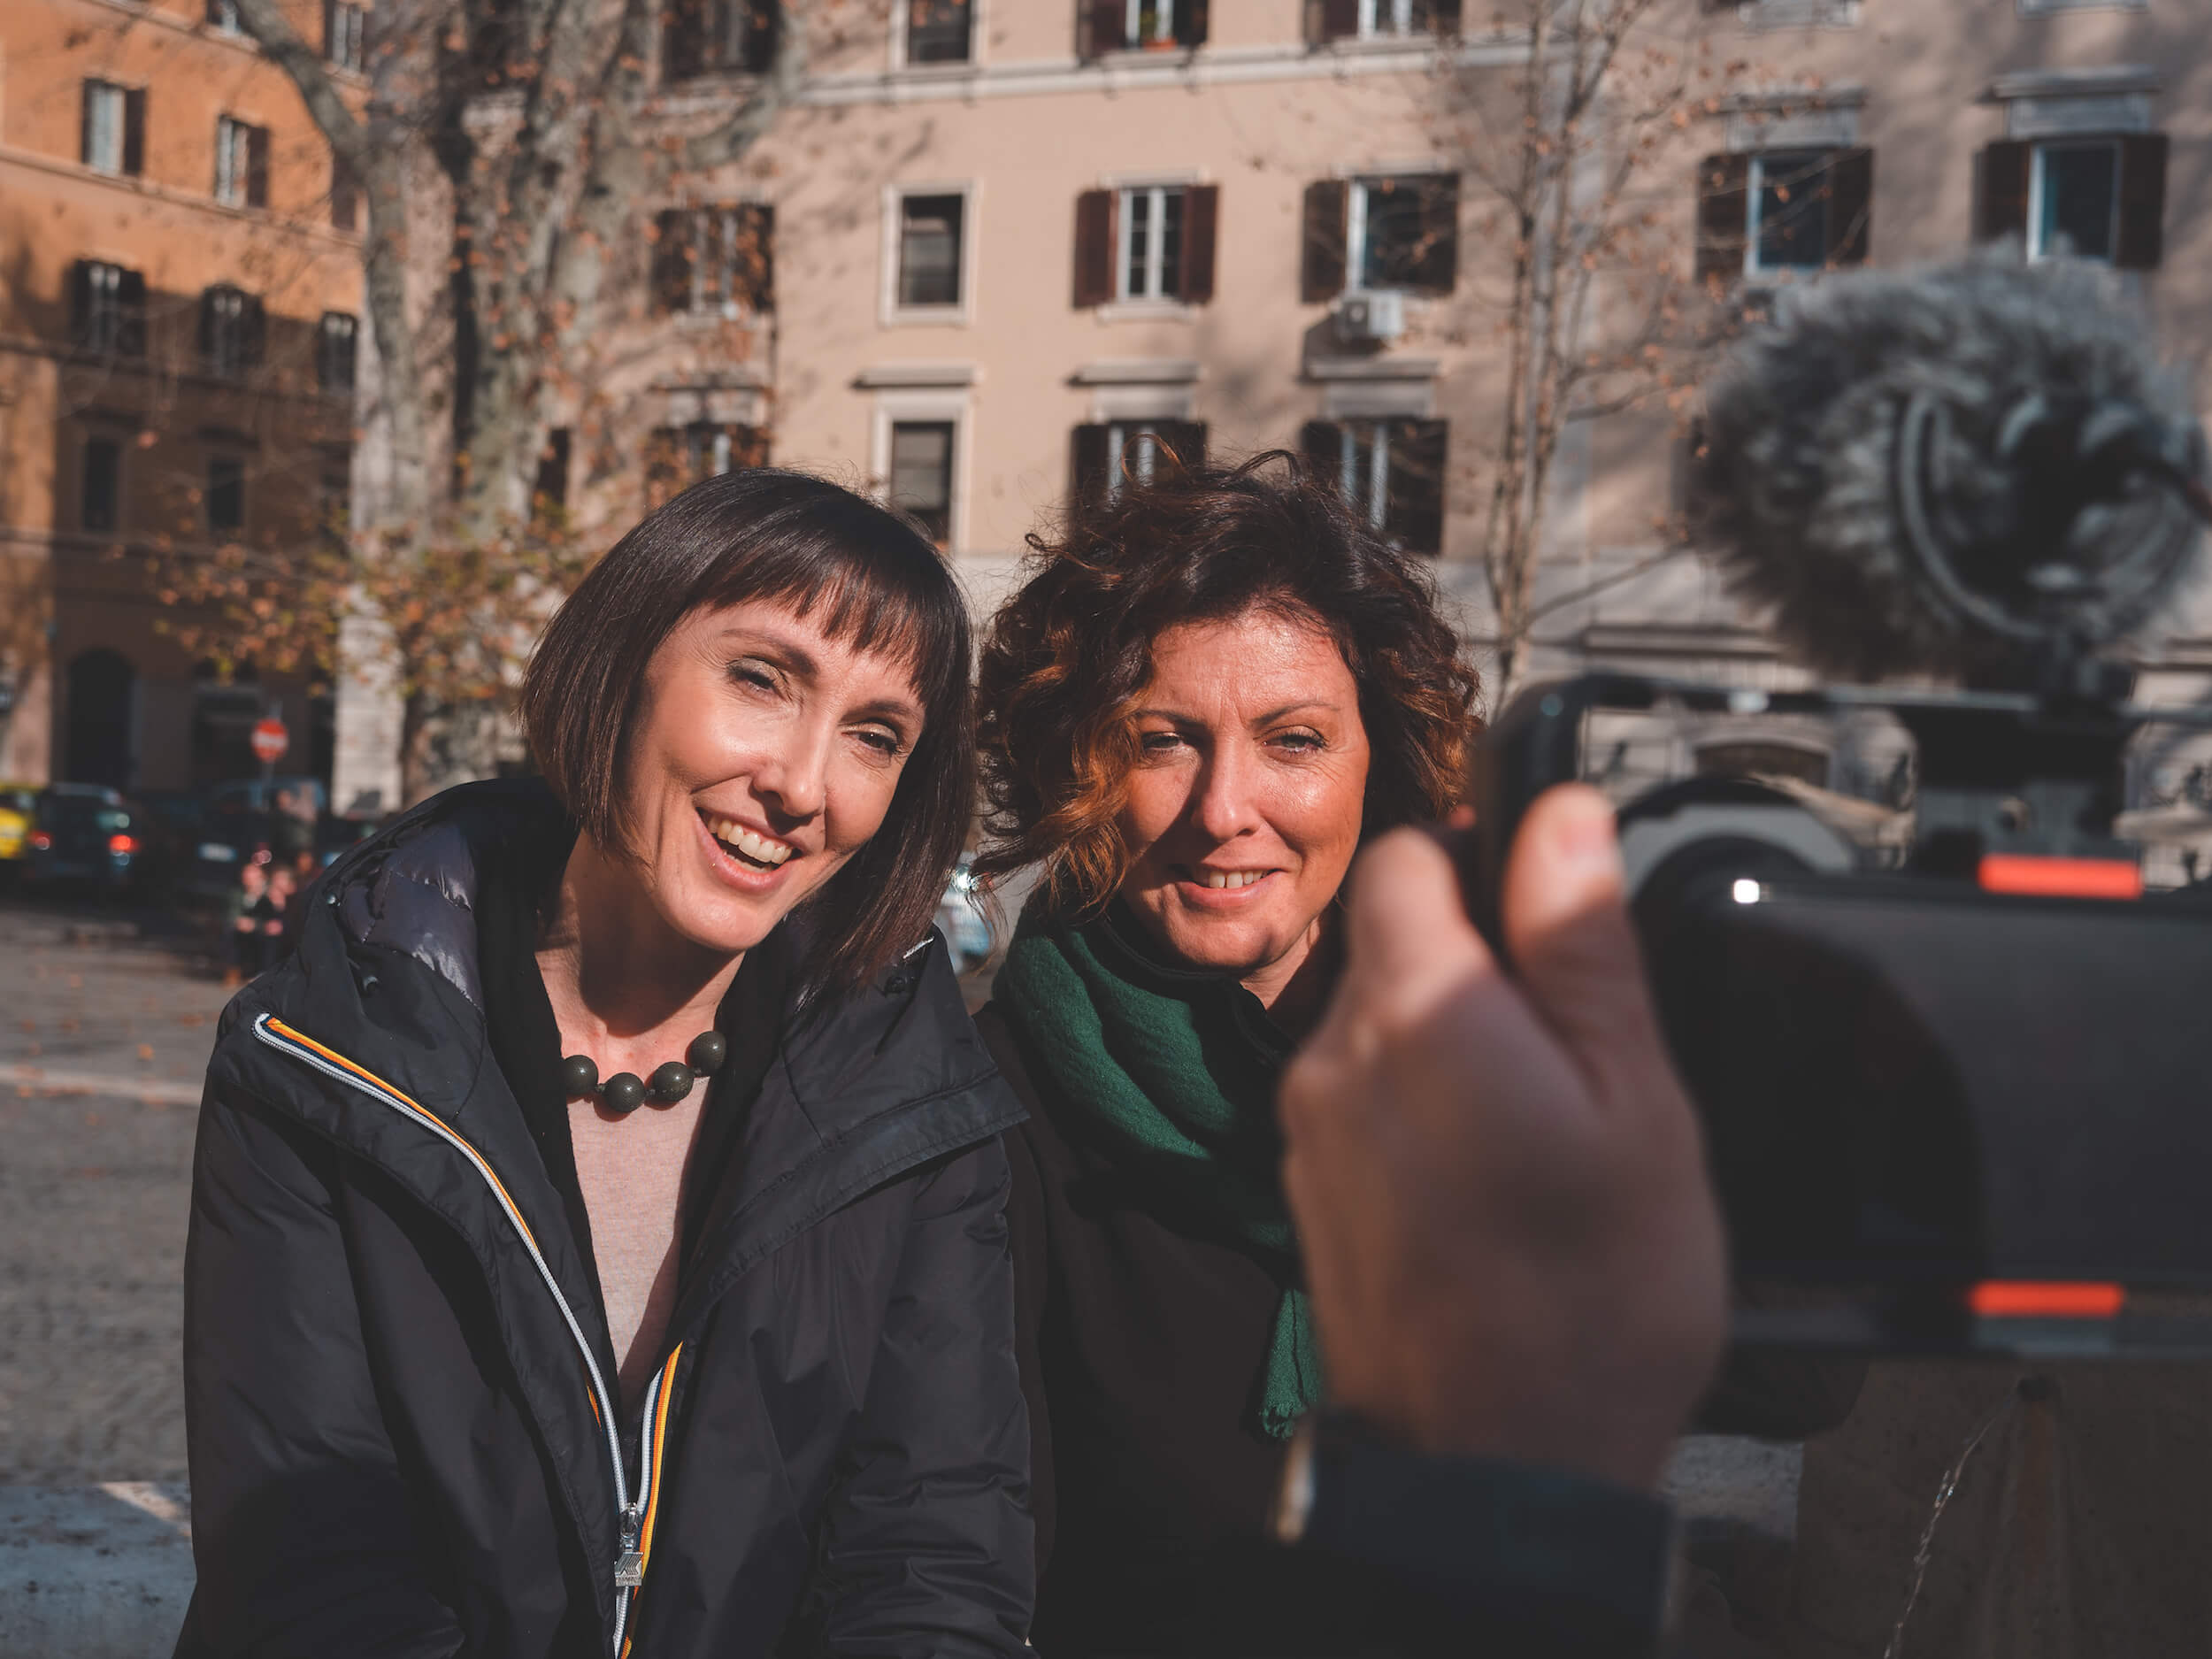 Valeria and Benedetta, the Foodie Sisters in Italy, during the shooting